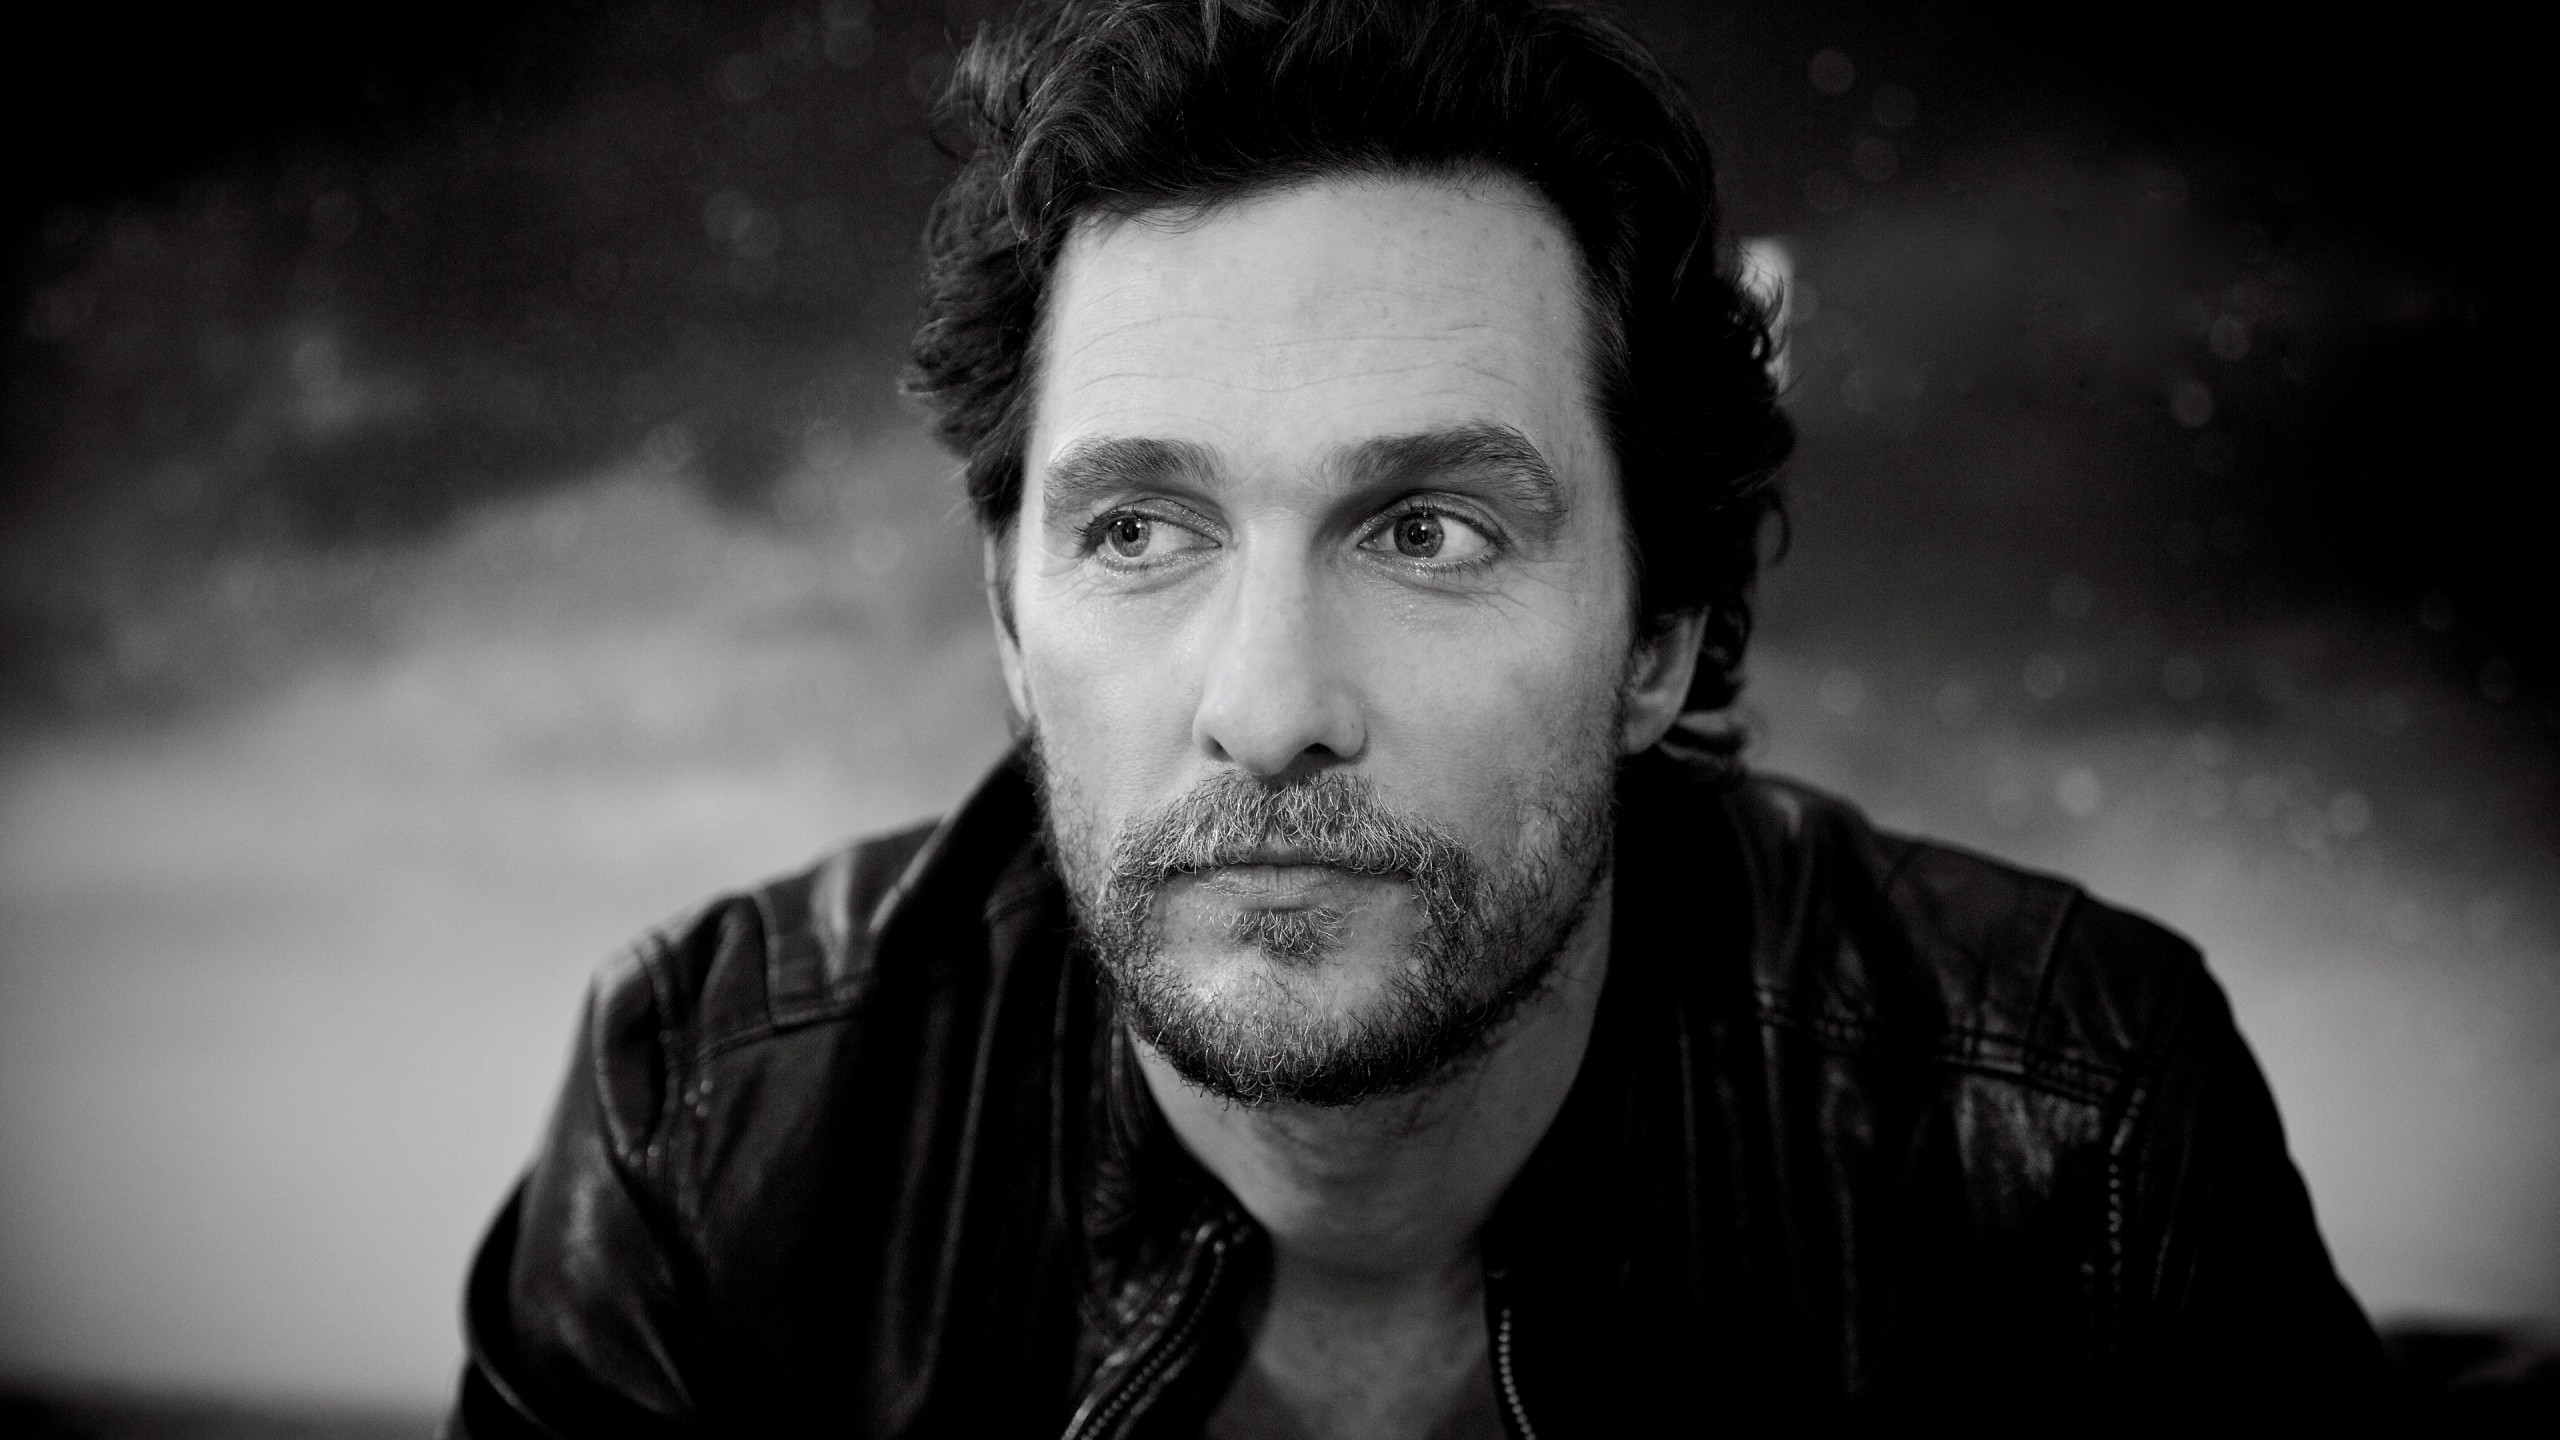 Matthew McConaughey Black & White Portrait Wallpaper for Social Media YouTube Channel Art